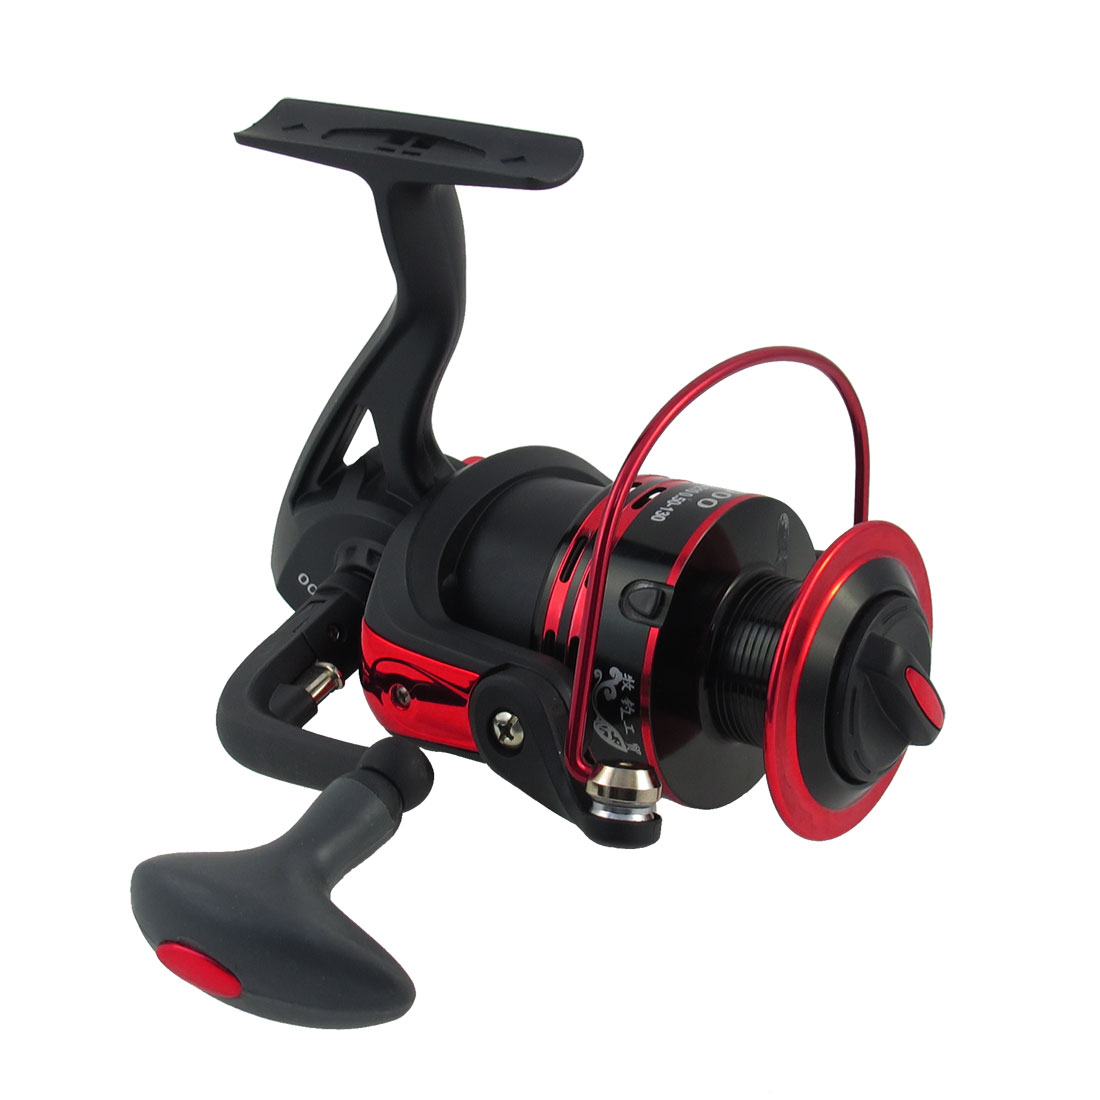 4.7:1 Gear Ratio 11 Ball Bearing Red Black Folding Fishing Spinning Reel